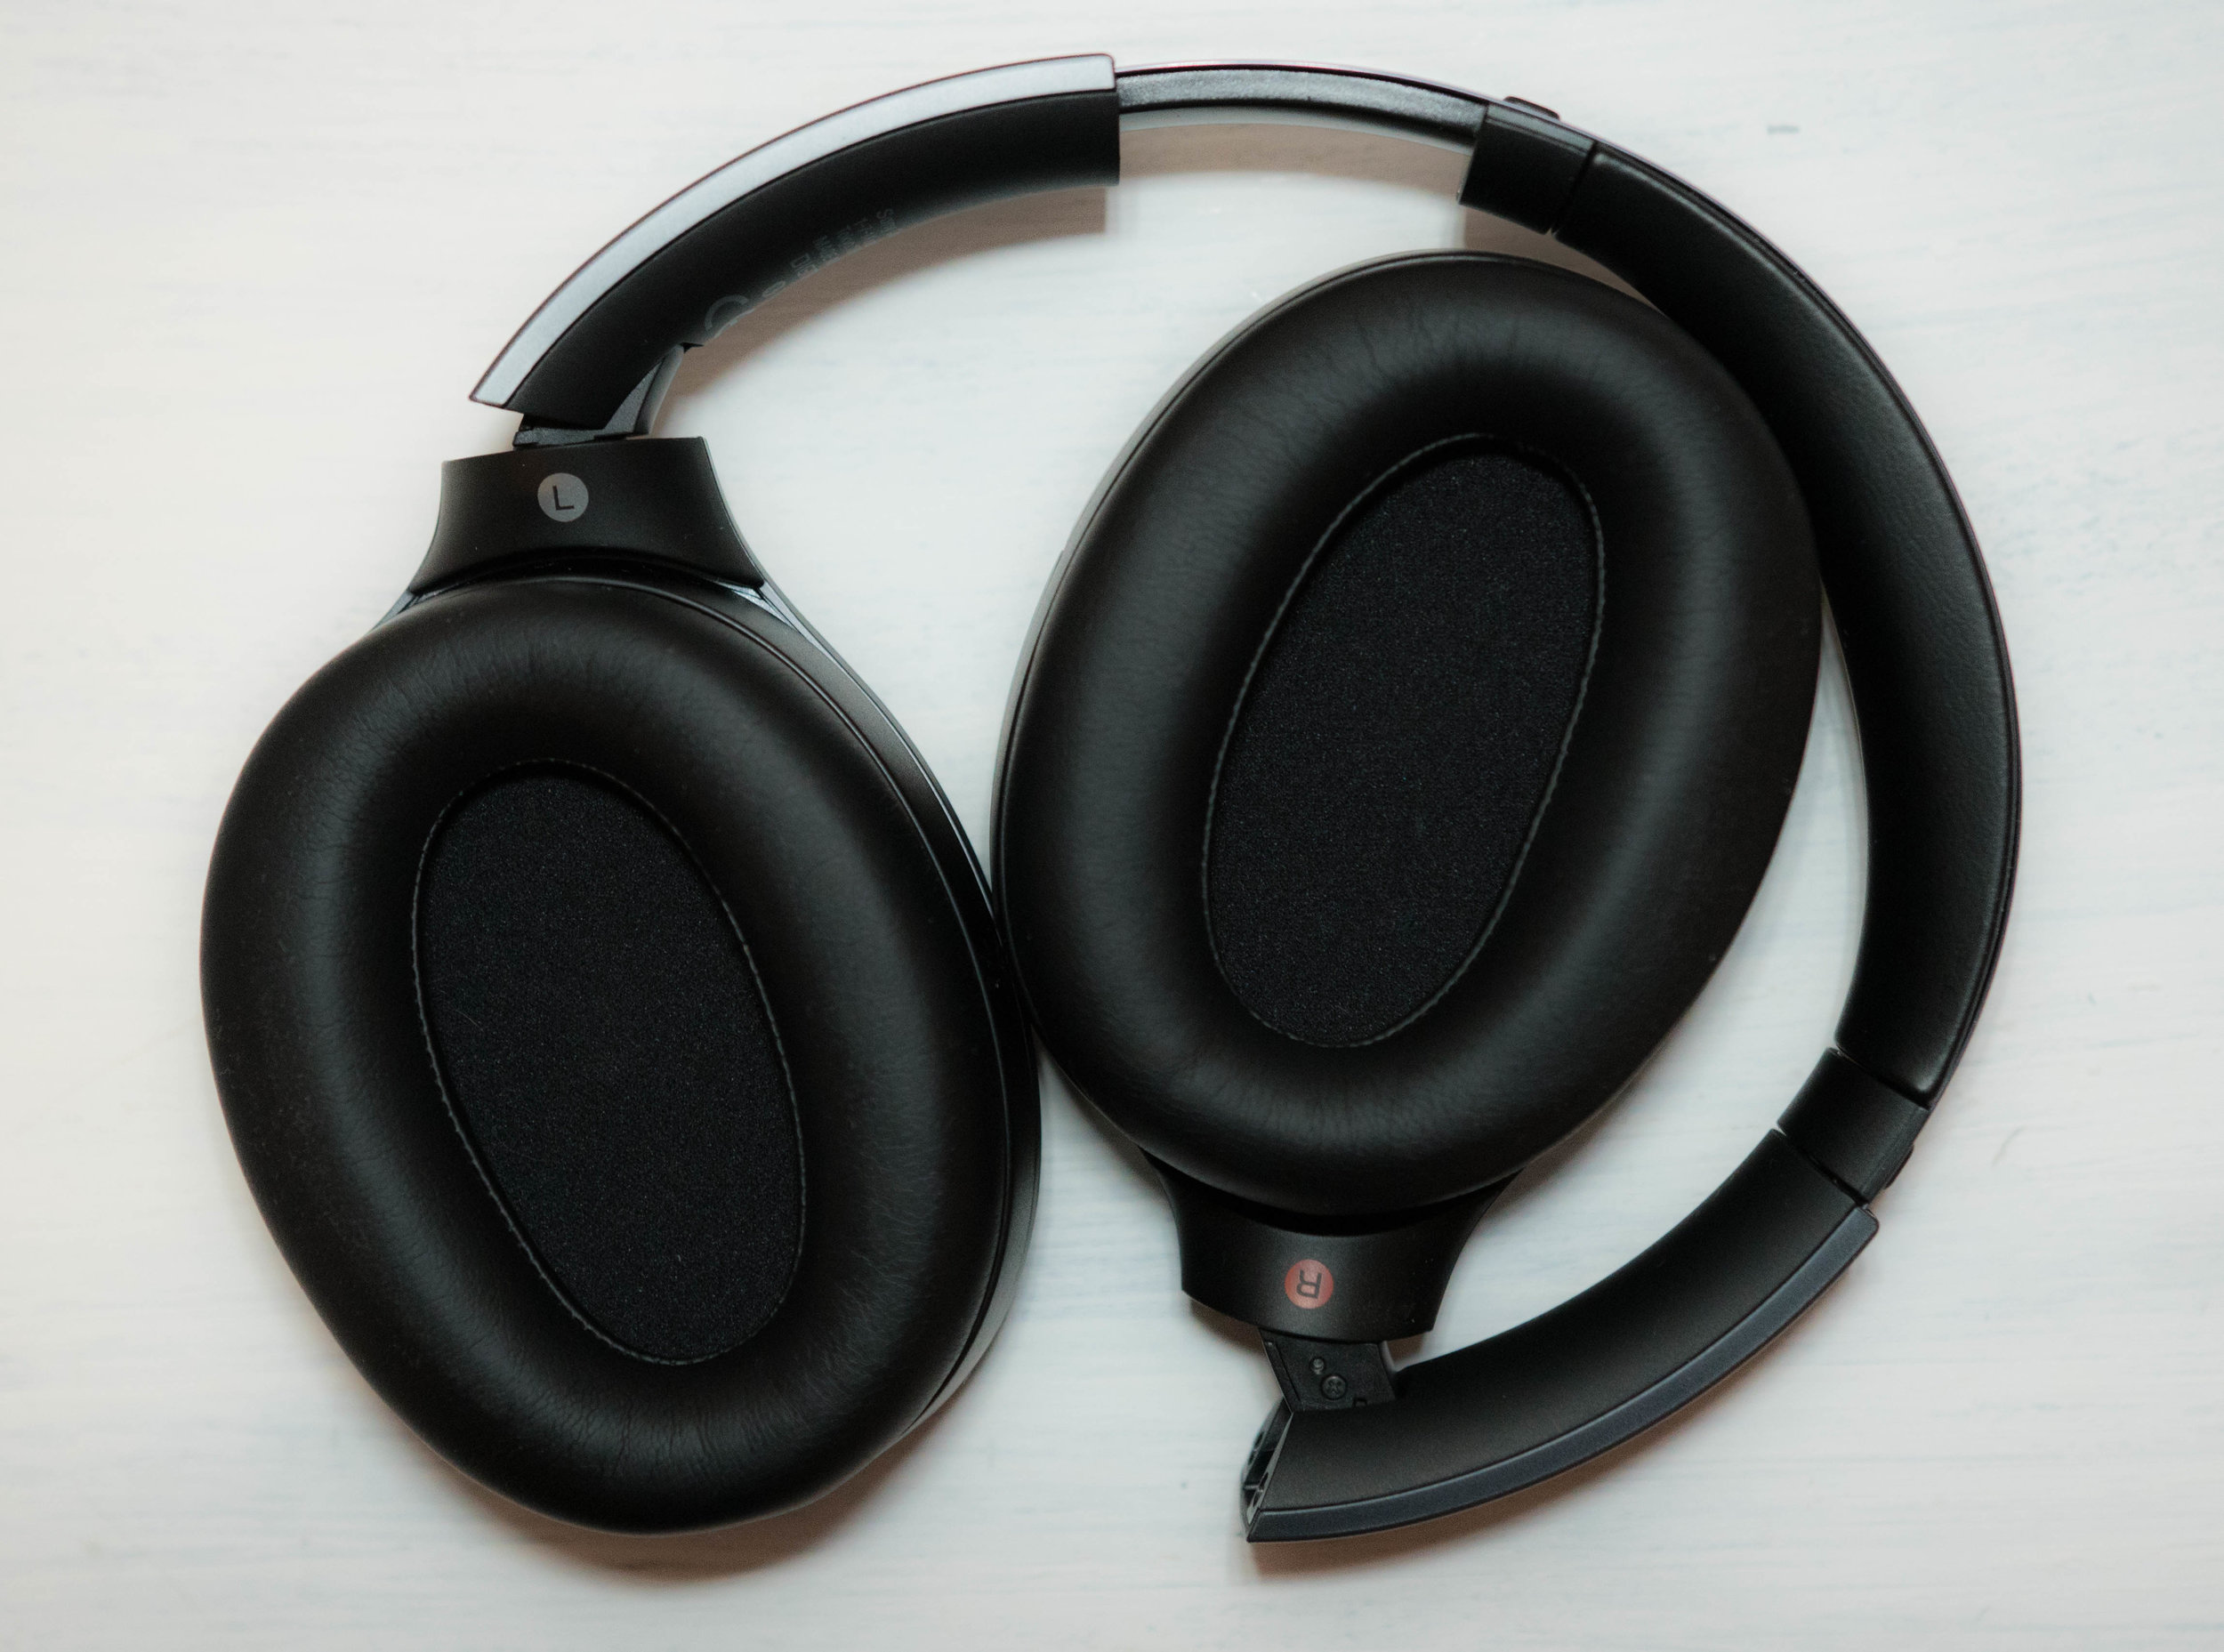 Wide and comfortable earpads - Inner view of the Sony WH-1000XM2 by Sony. We were impressed by the comfort of these portable headphones throughout our review.